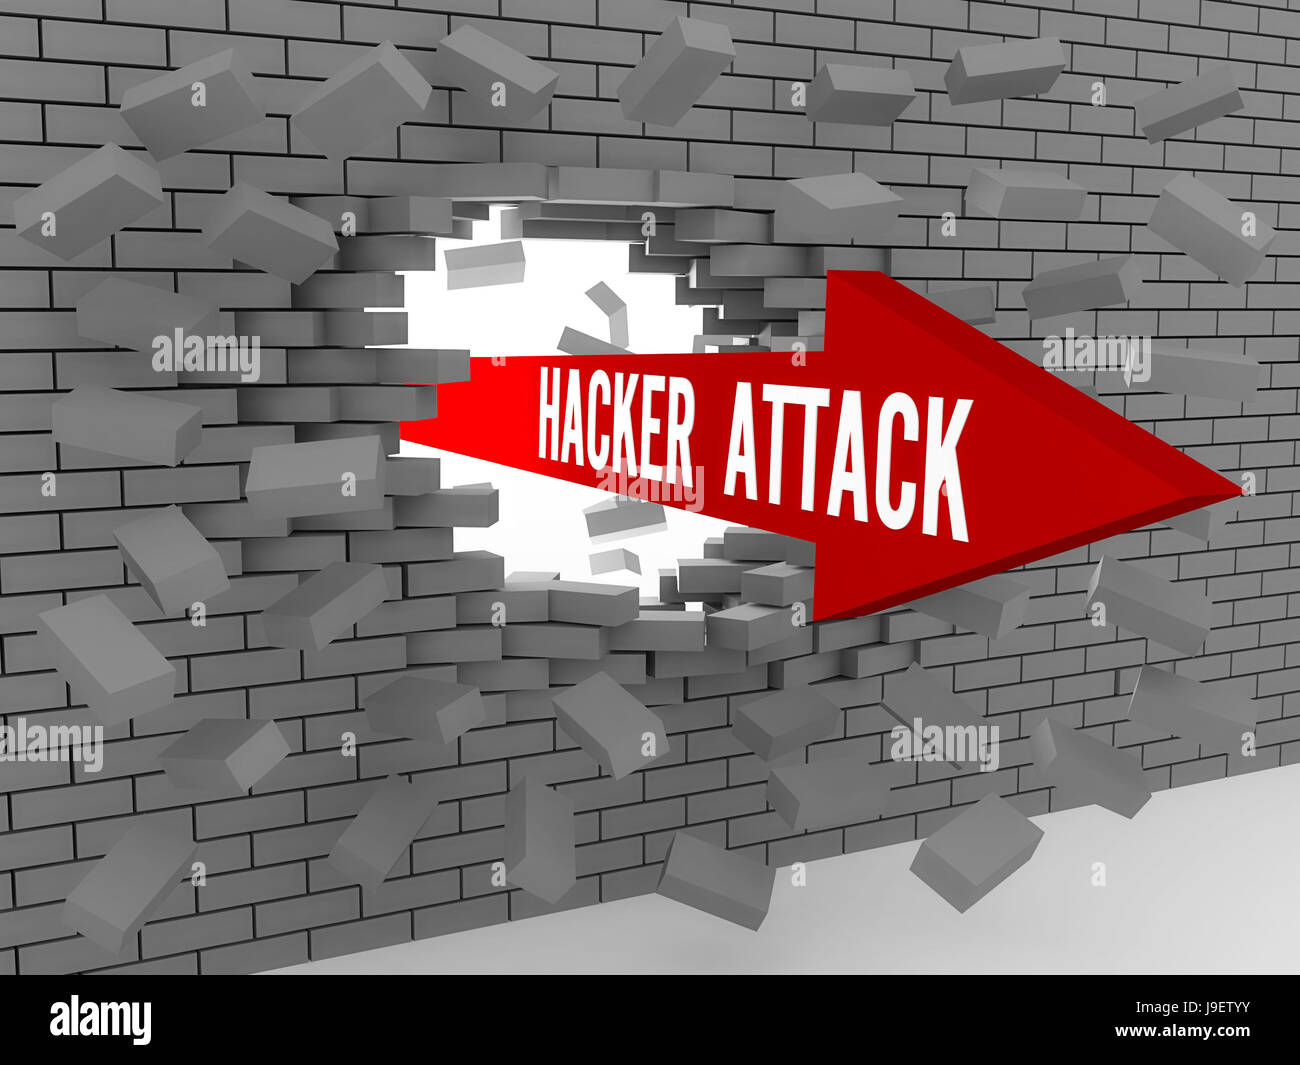 Arrow with words Hacker Attack breaking brick wall. Concept 3D illustration. - Stock Image